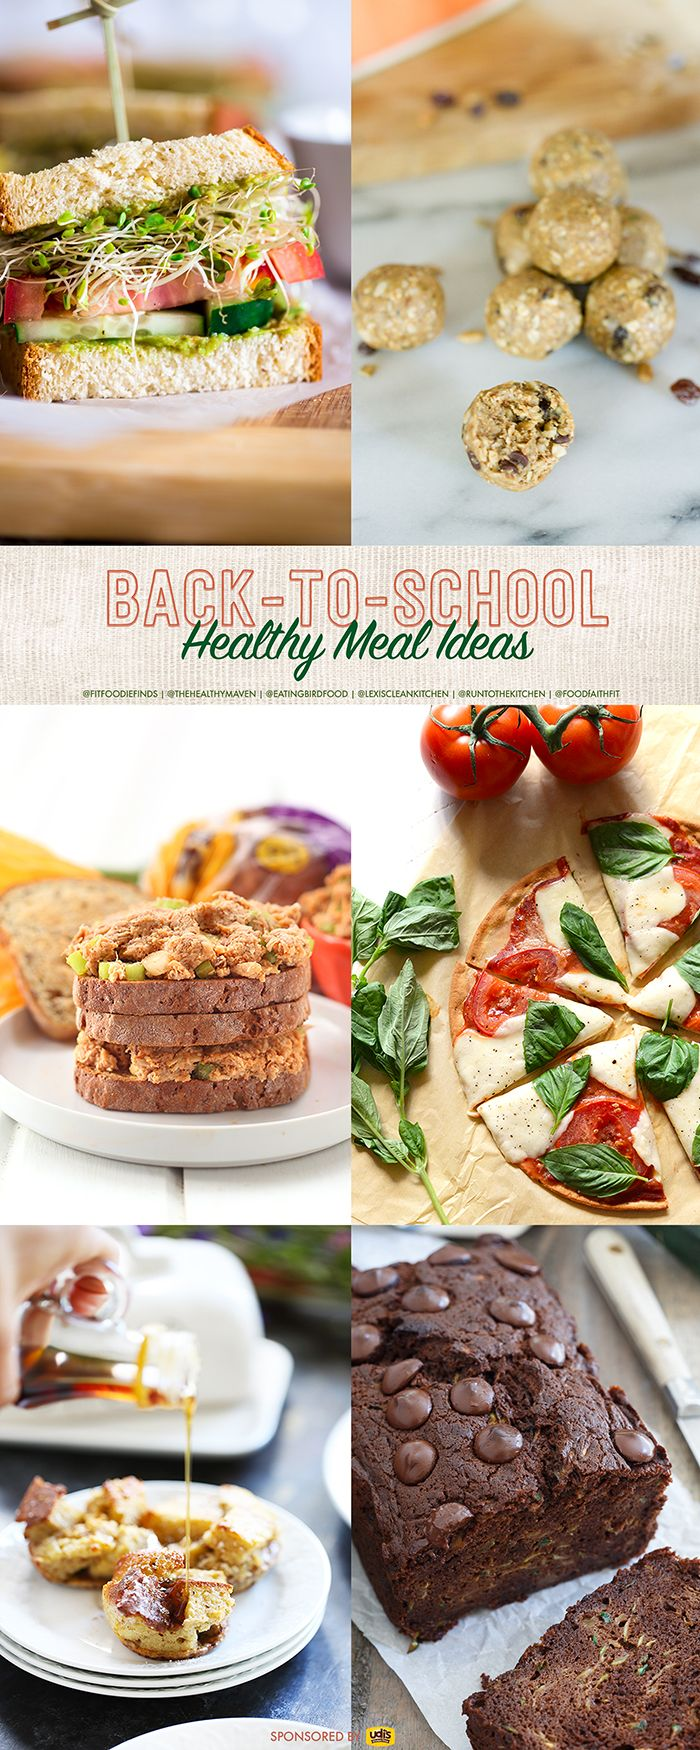 Healthy Back to School Meals #glutenfree